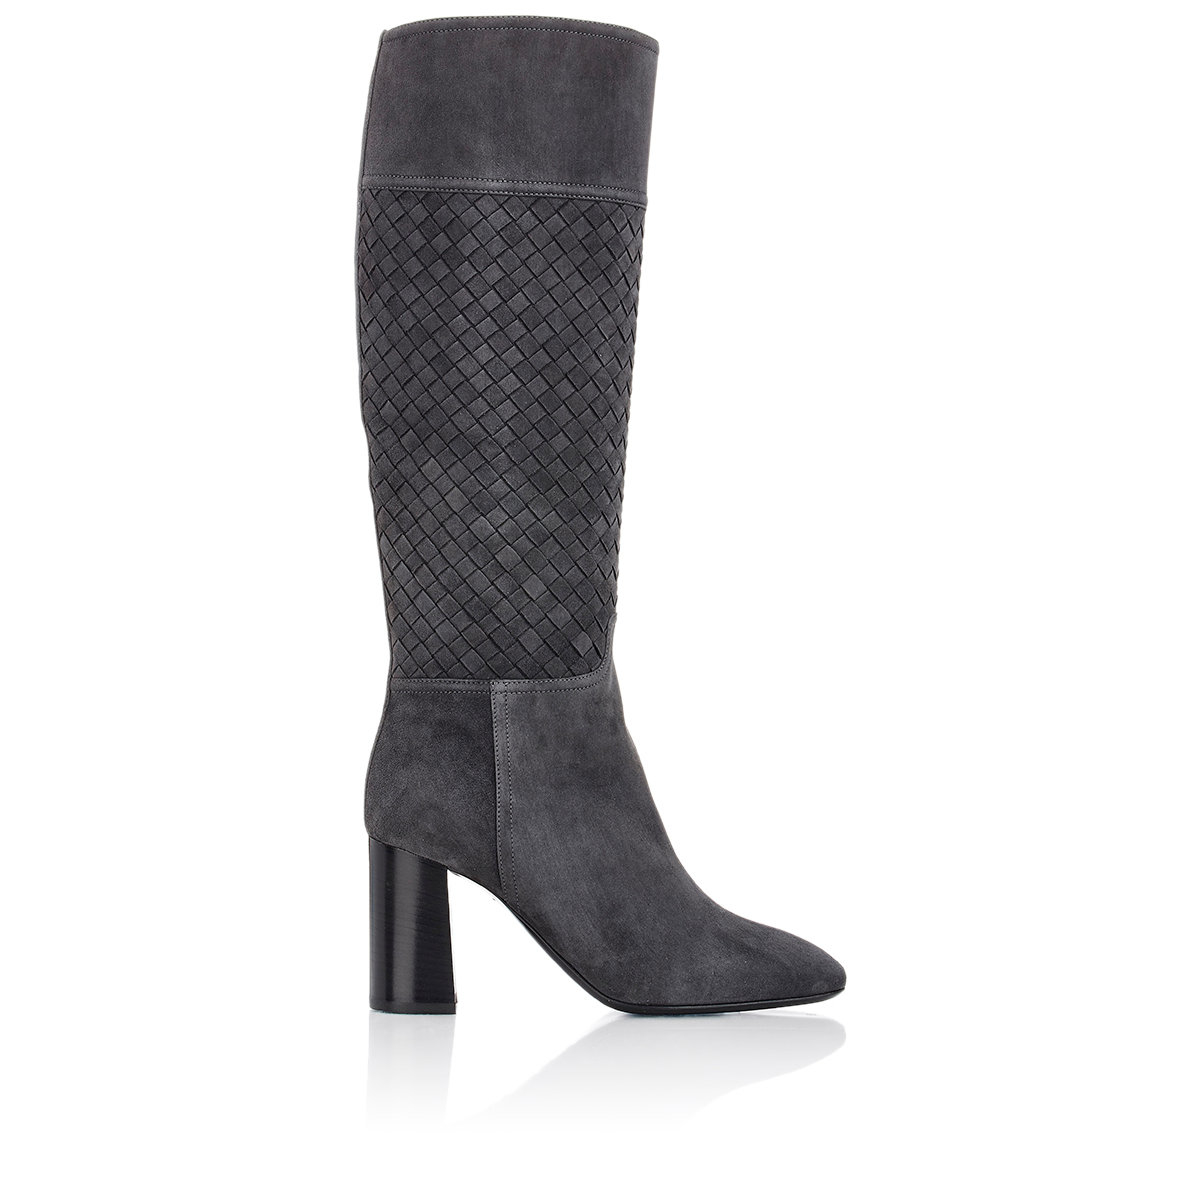 Bottega Veneta Crocodile Knee-High Boots geniue stockist cheap price outlet pre order outlet good selling Xk744UesM